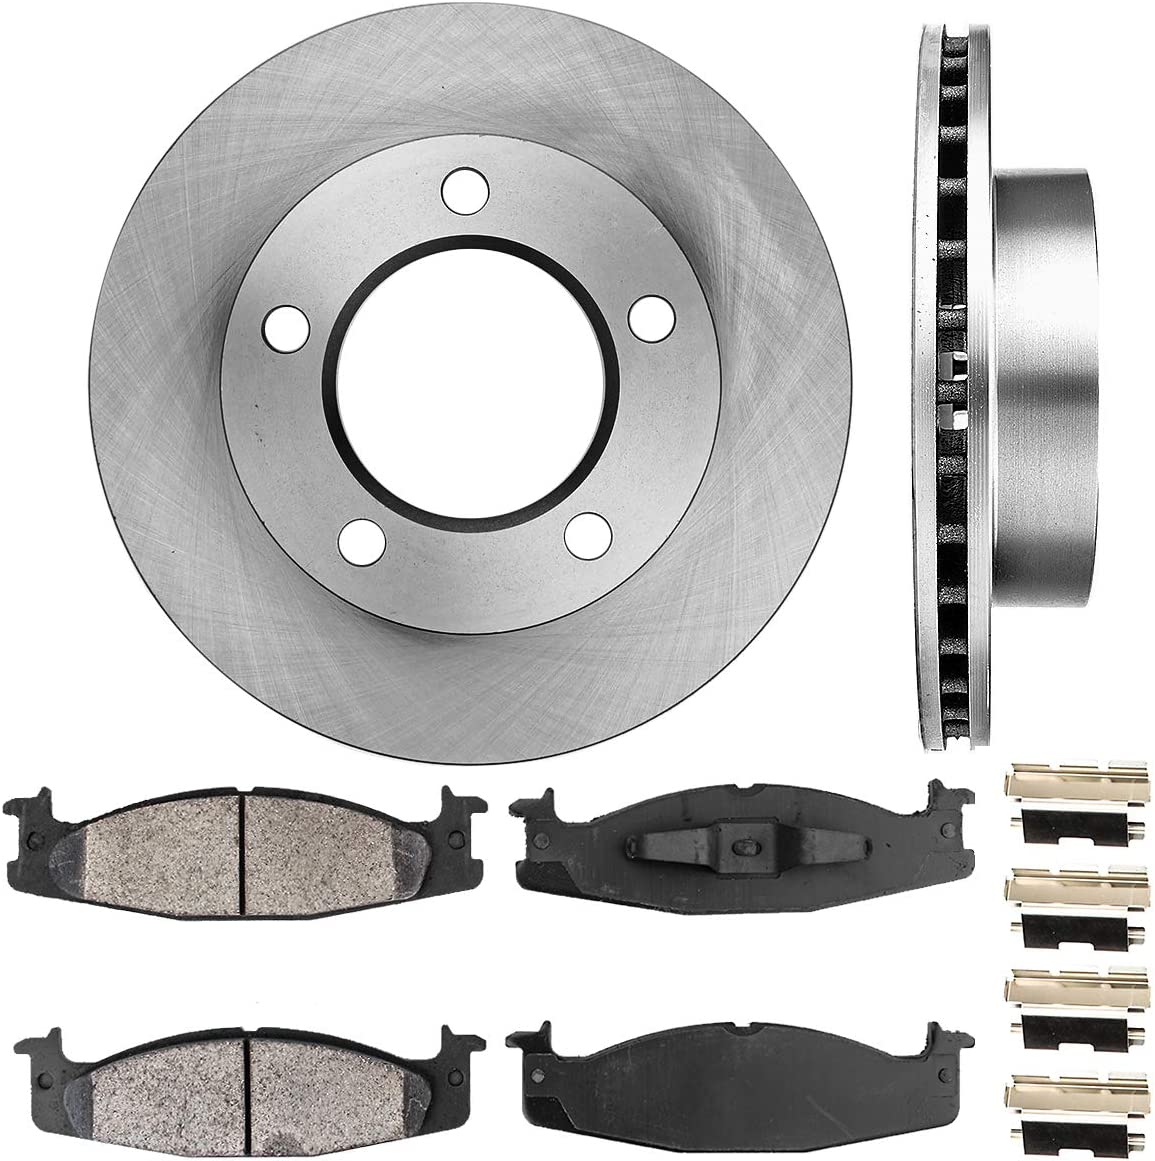 CRK13604 FRONT store 297 mm Premium OE 5 Brake + Super beauty product restock quality top! 2 Rotors Lug Disc